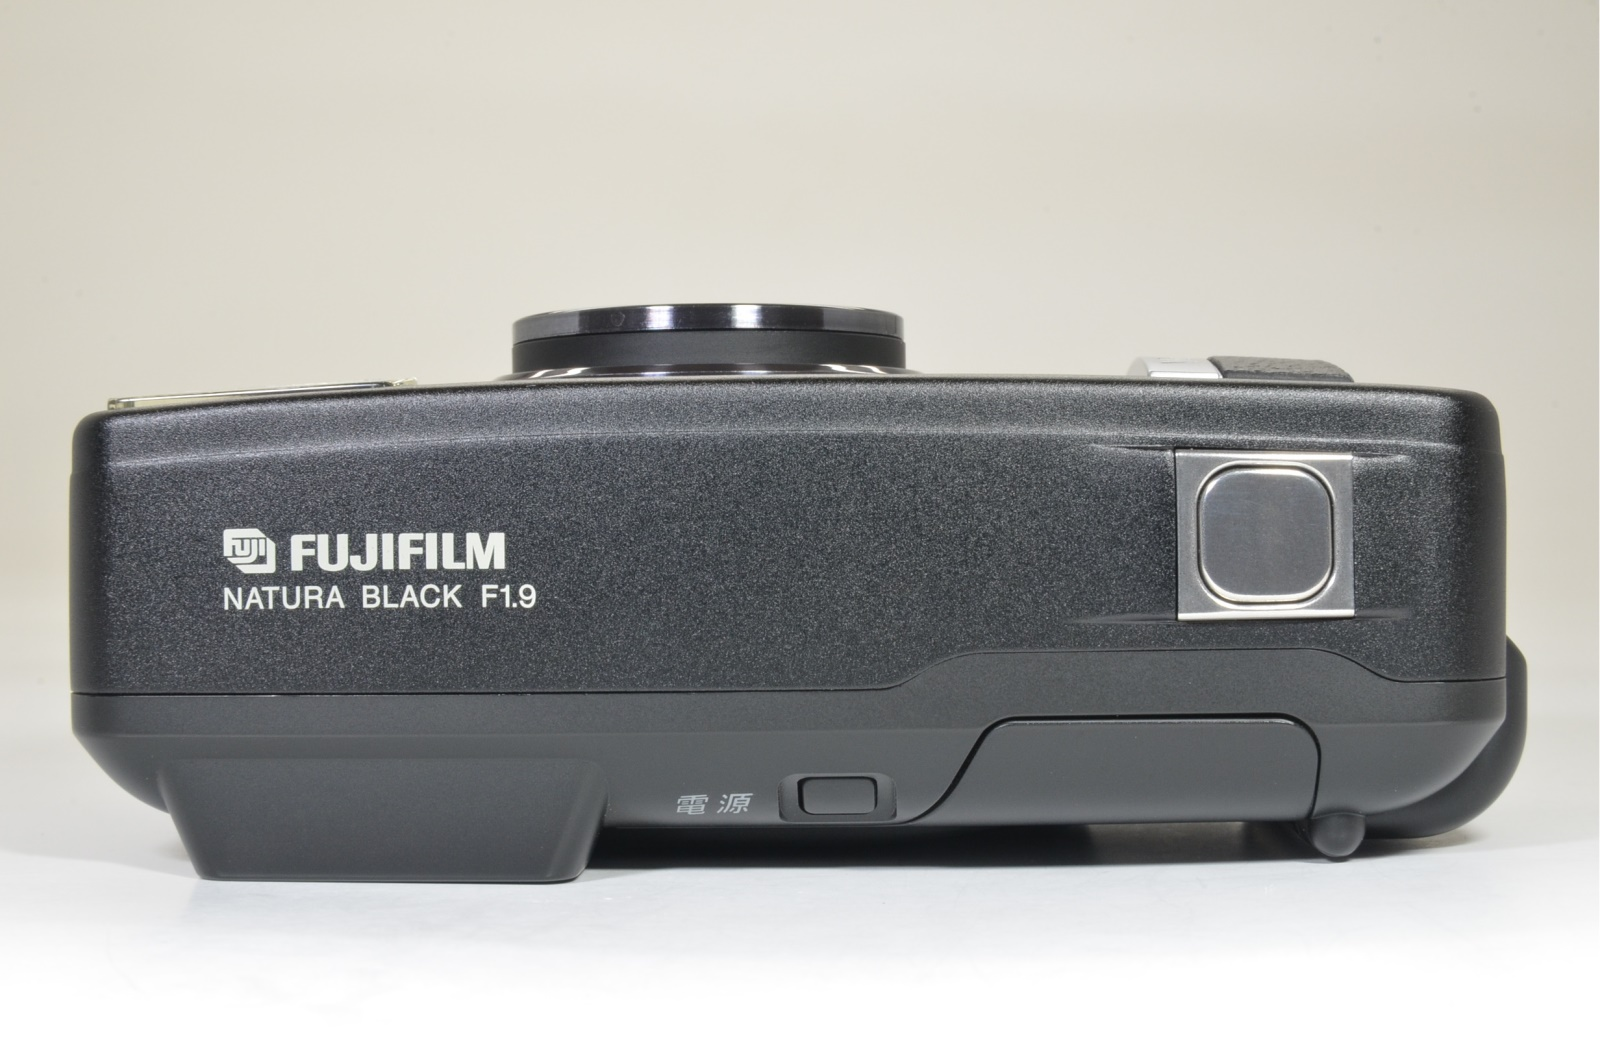 fujifilm natura black film camera fujinon 24mm f1.9 near mint shooting tested